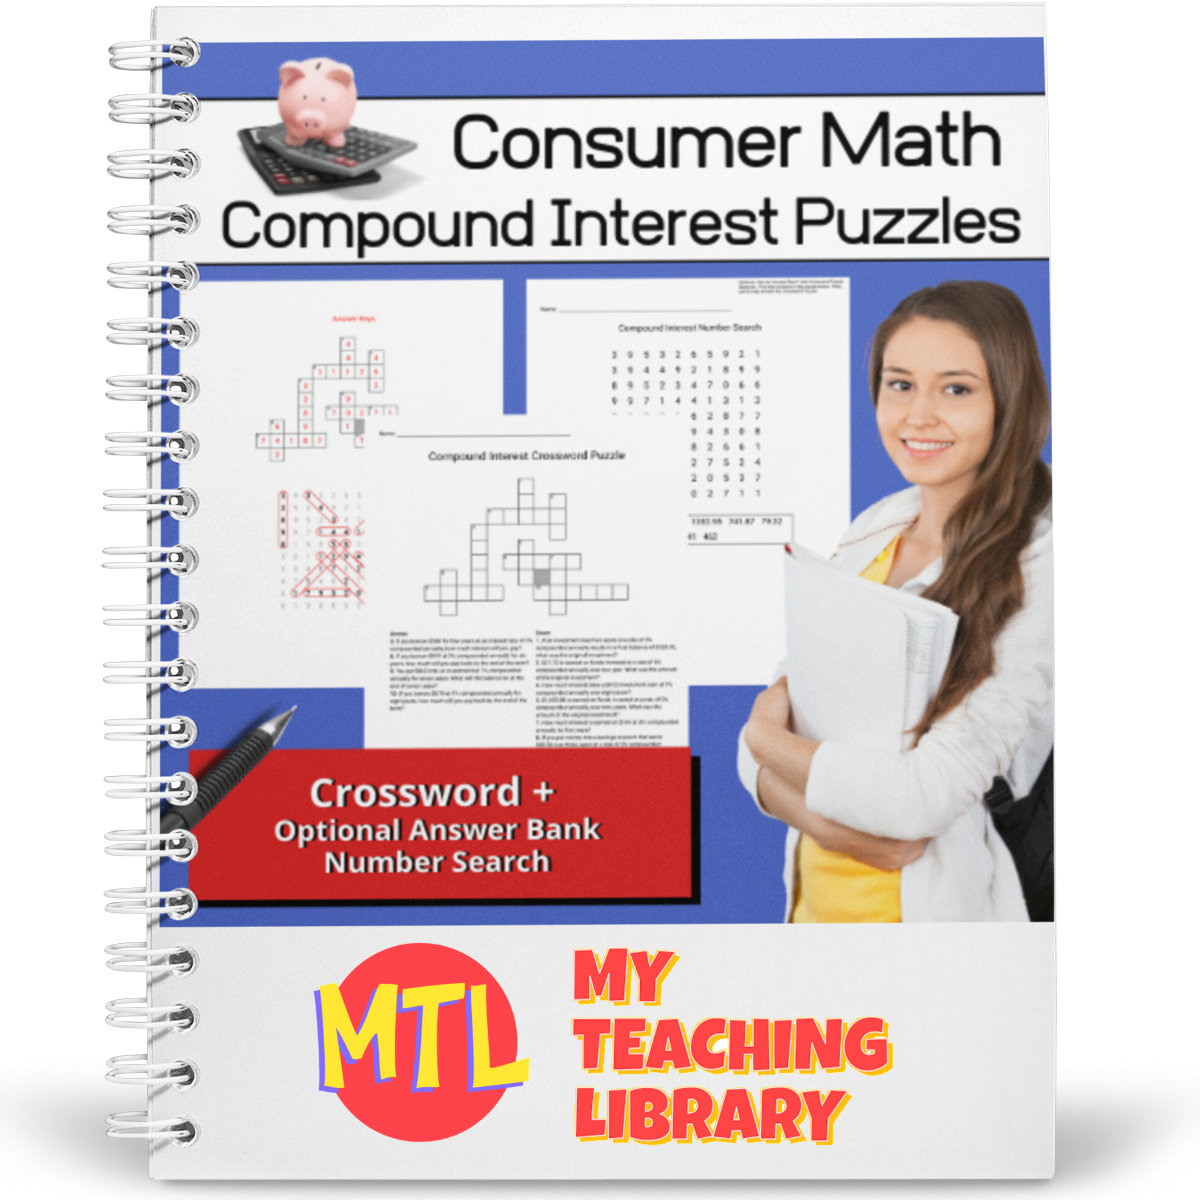 hight resolution of Consumer Math   Compound Interest Puzzles - My Teaching Library    CHSH-Teach LLC